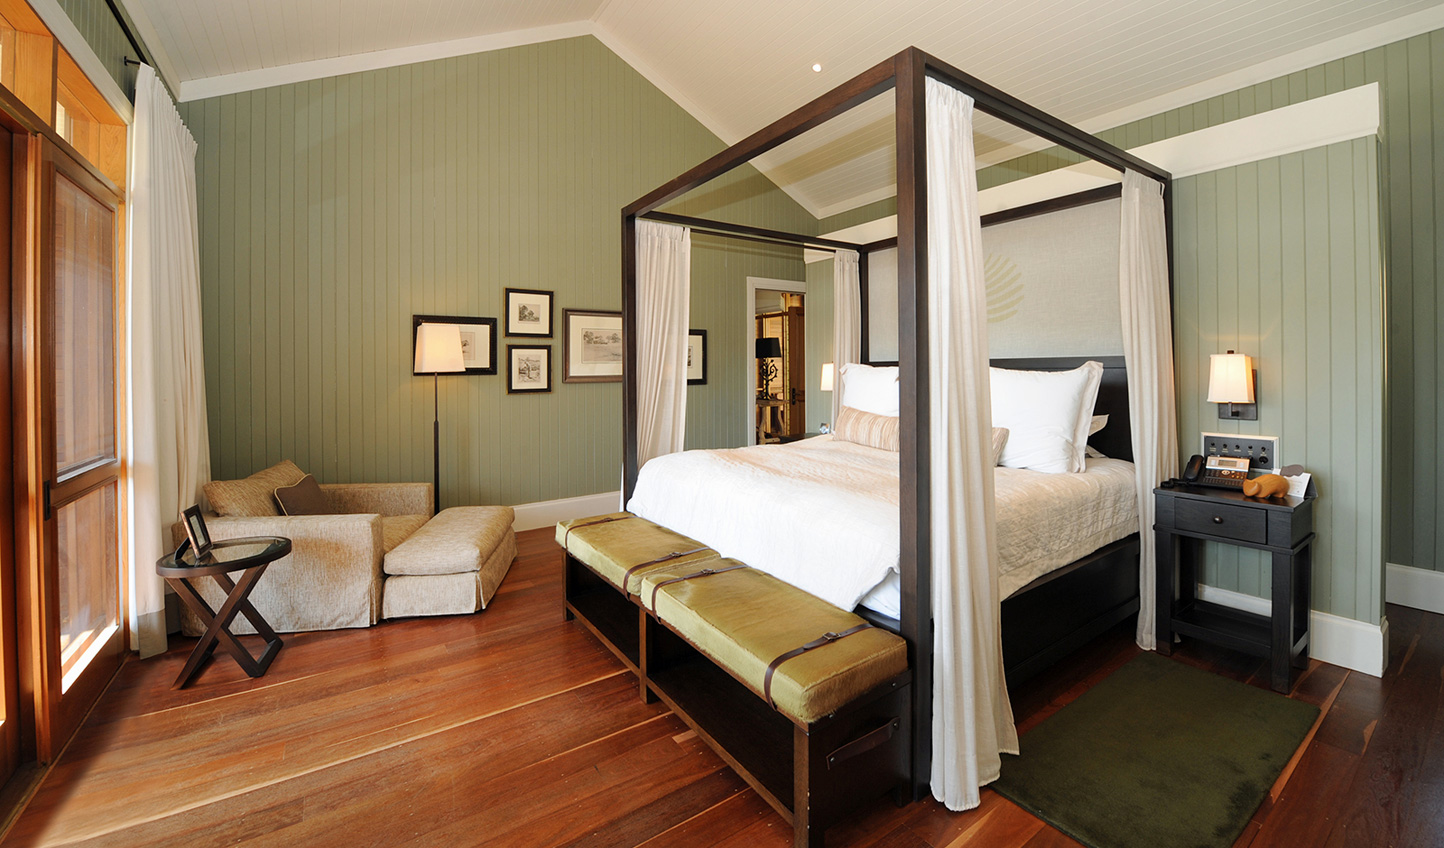 Sleep soundly in sumptuous four-poster king-size beds